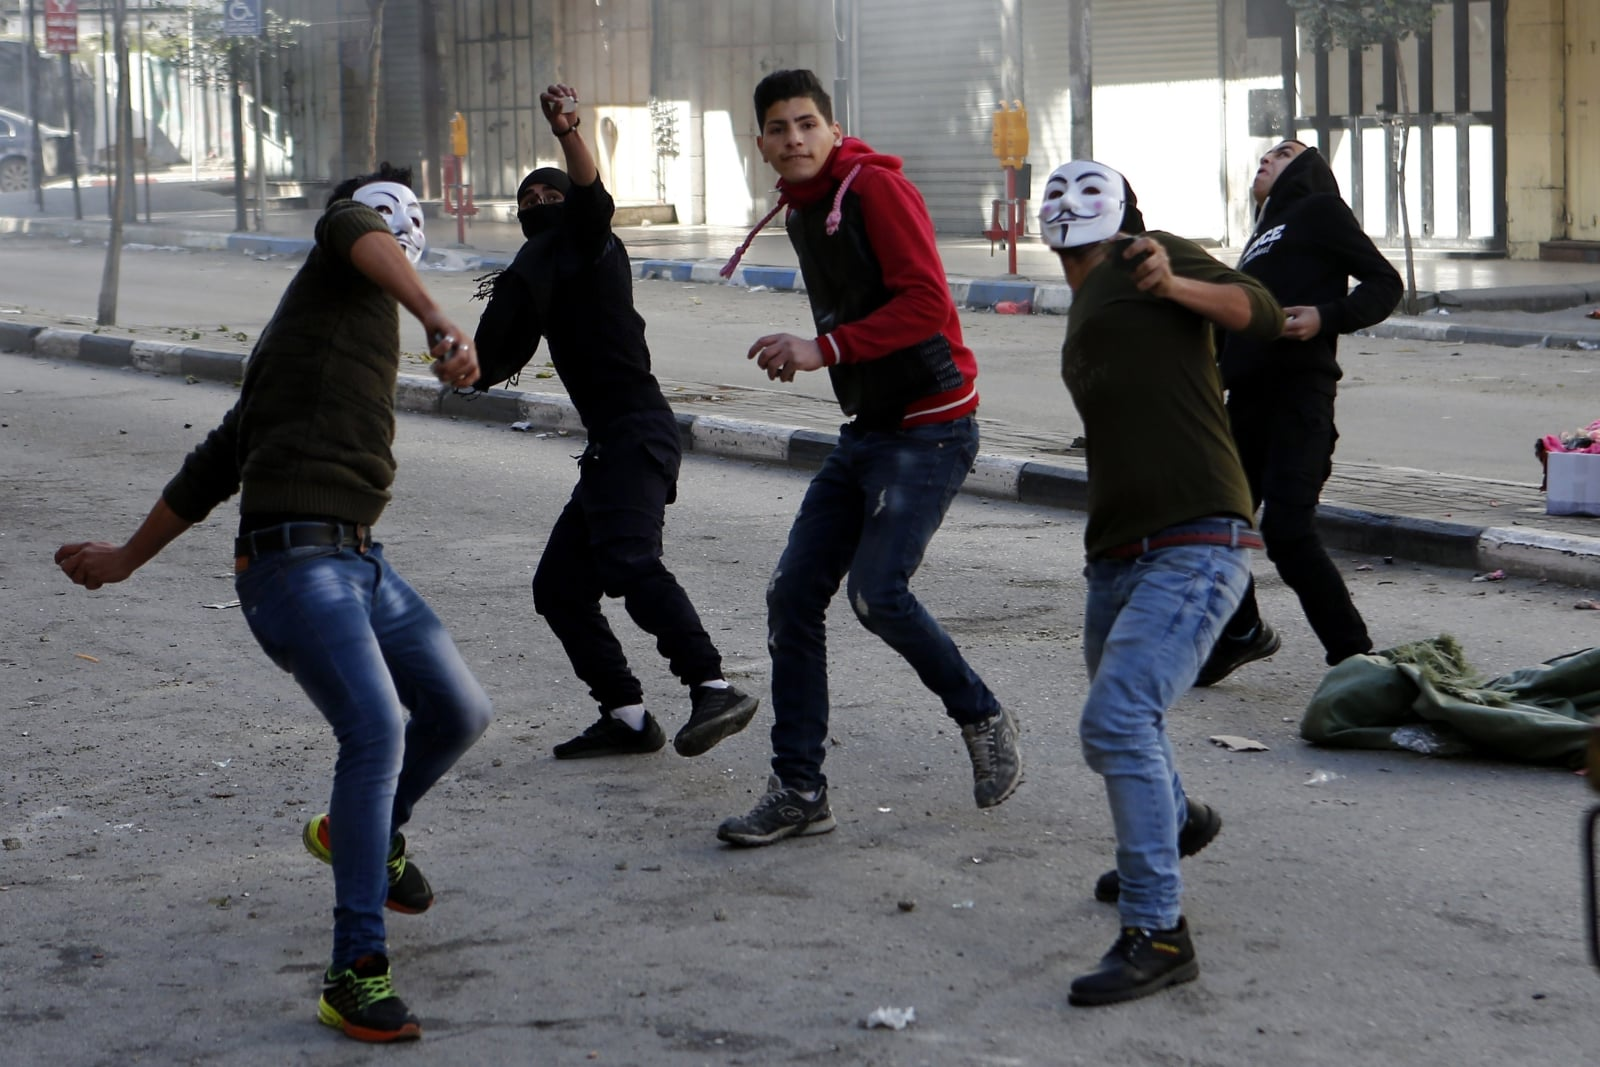 epa06492047 Palestinians hurl stones at Israeli troops during clashes in the West Bank city of Hebron, 02 February 2018. Clashes erupted as part of ongoing protests against US decision to recognize Jerusalem as the capital of Israel and US Vice President Mike Pence remarks in January that the US embassy will be relocated to Jerusalem by 2019.  EPA/ABED AL HASHLAMOUN Dostawca: PAP/EPA.